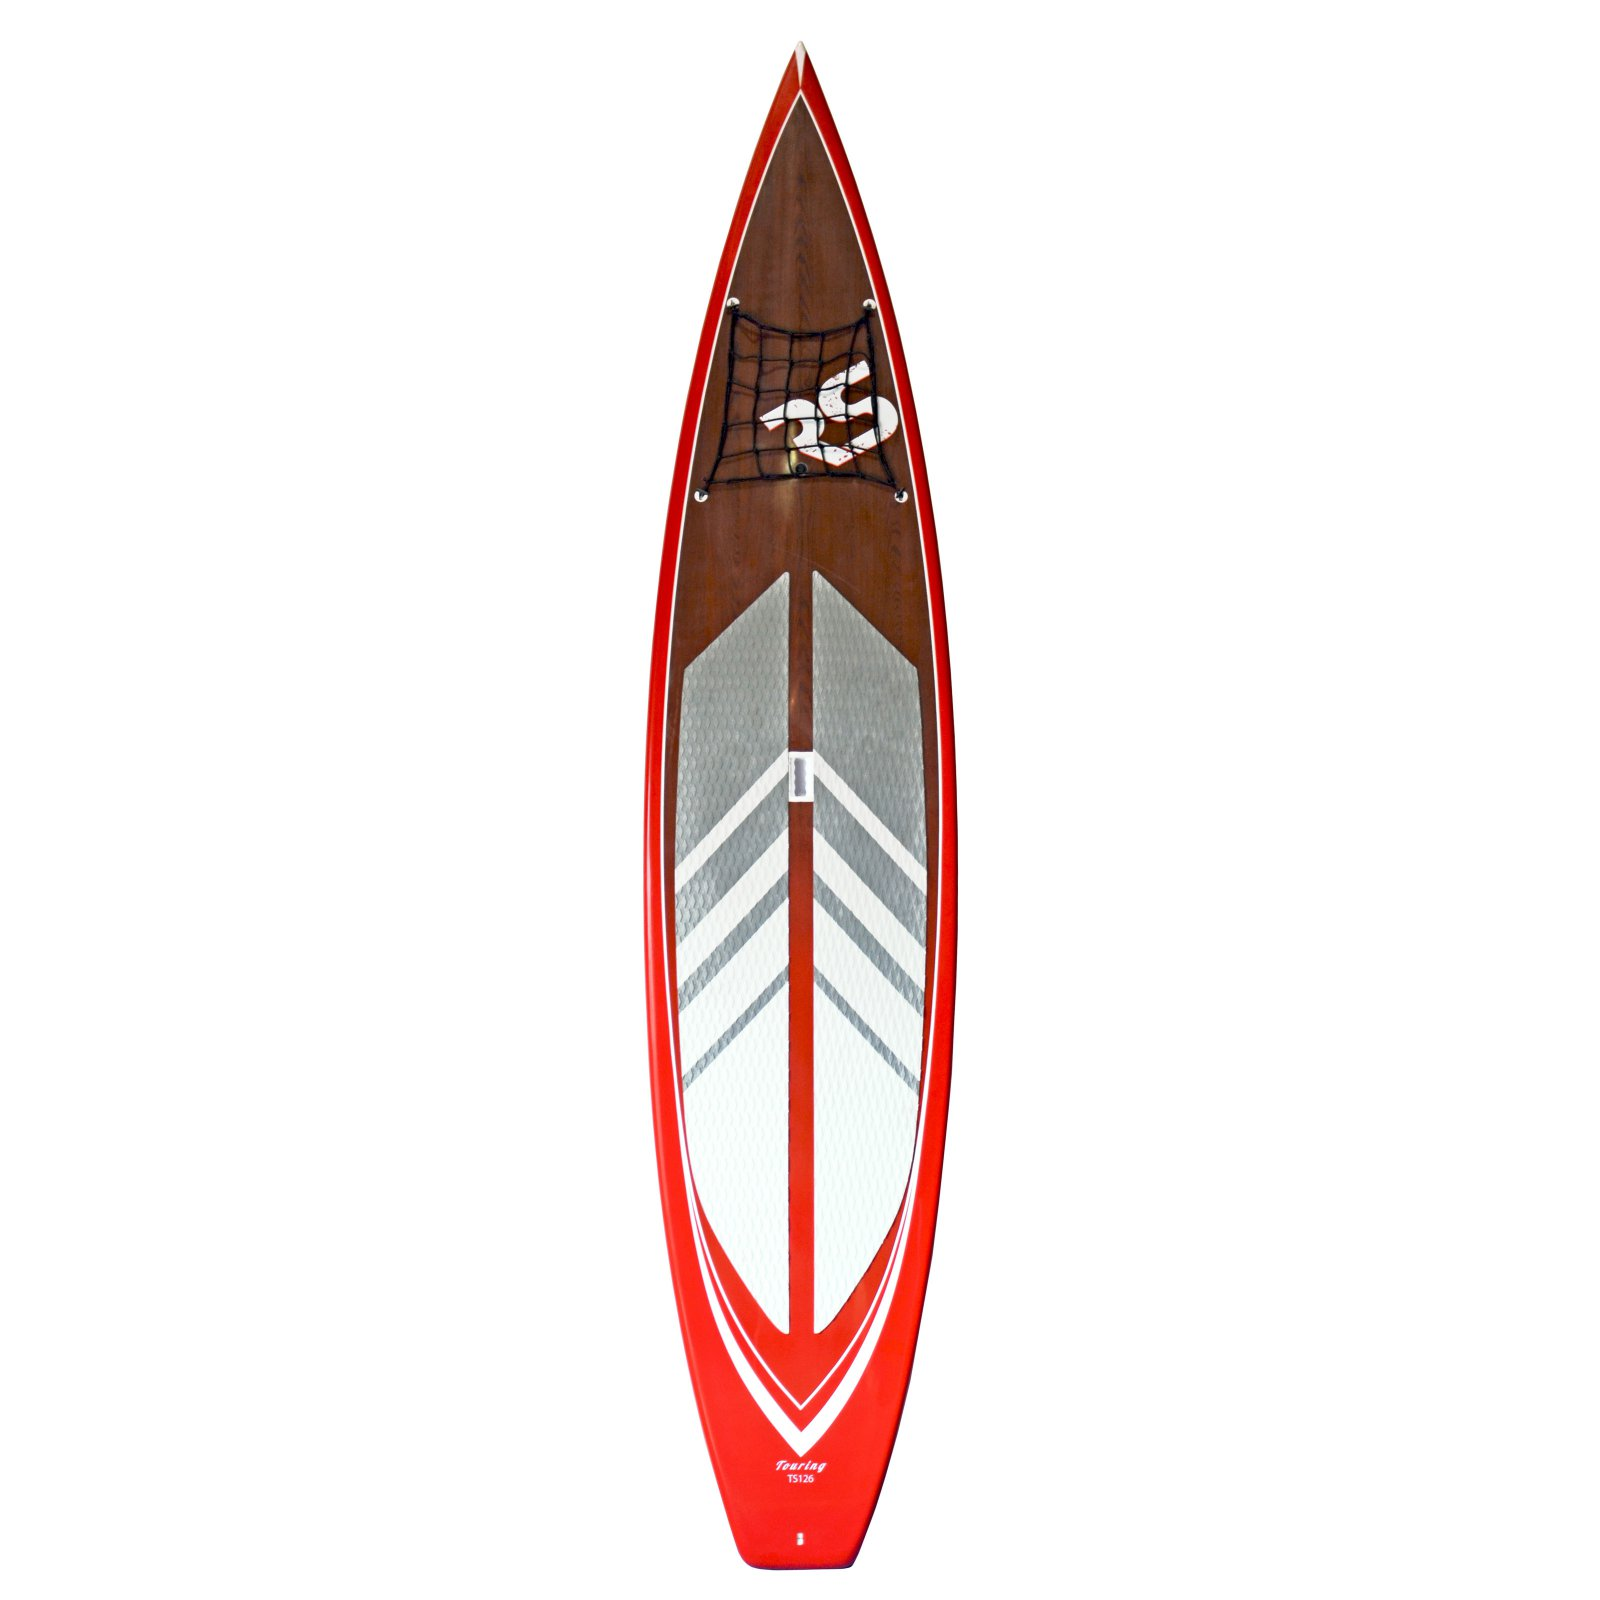 Click here to buy Rave Sports Touring SUP TS126 Stand Up Paddle Board by Overstock.